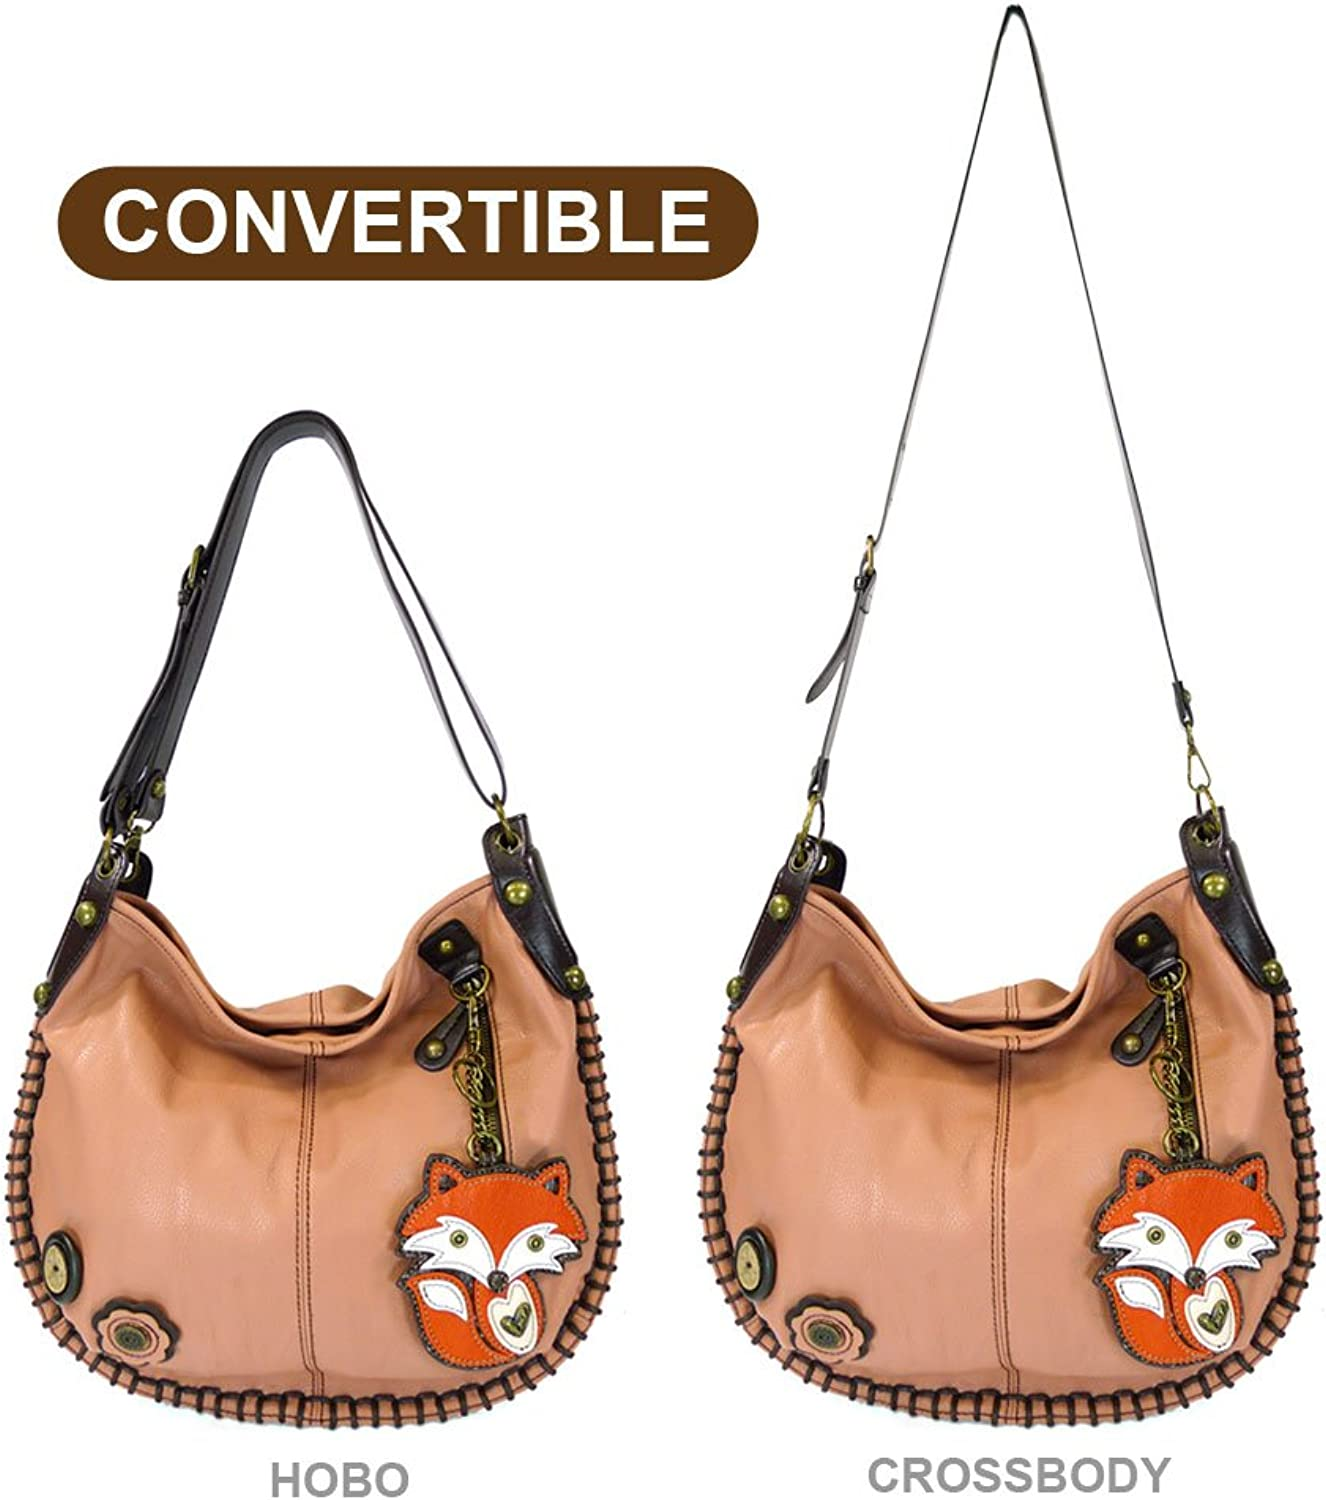 Chala Hobo Crossbody Large Tote Bag FOX Vegan leather PINK Congreenible